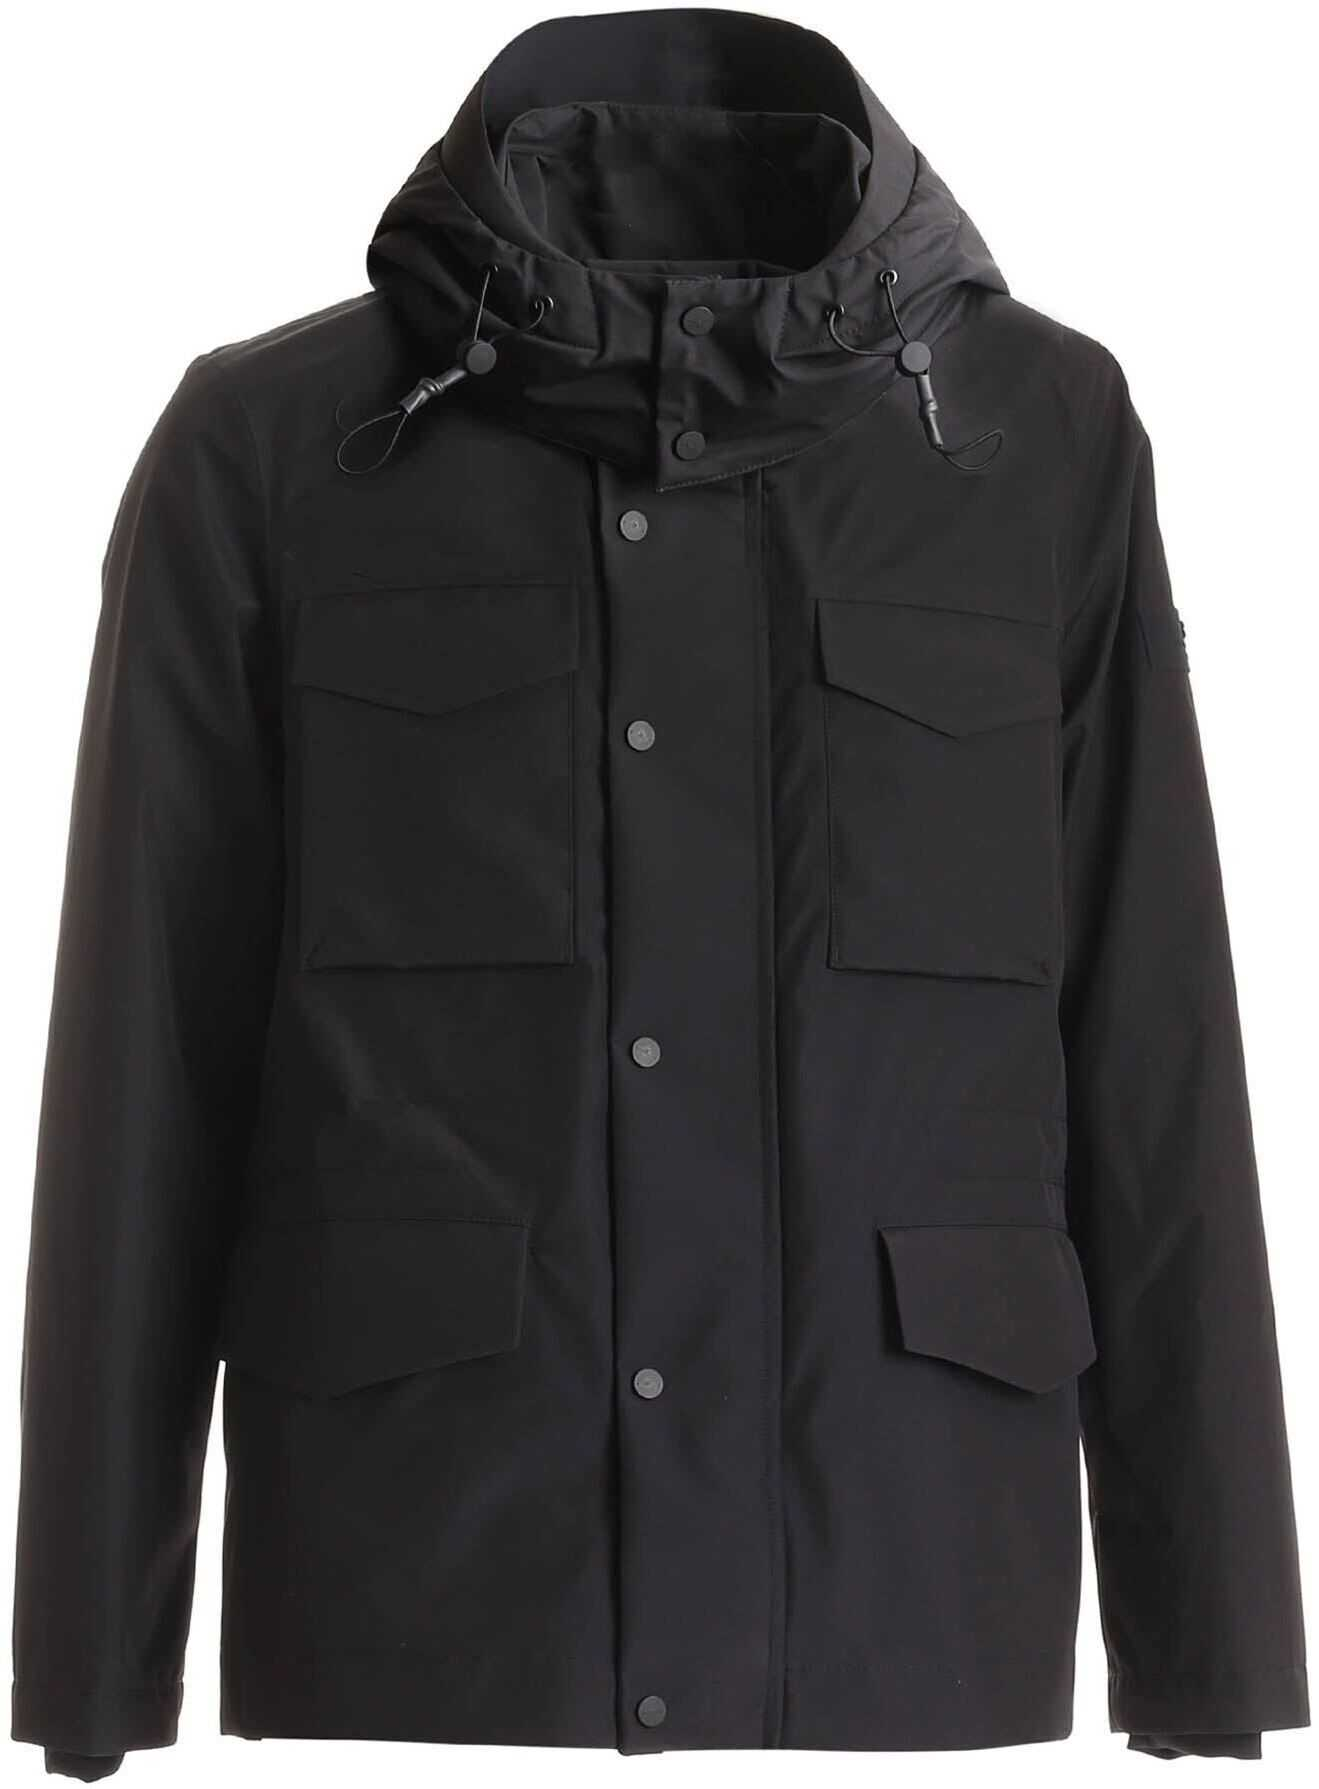 Peuterey Tatanka Drp 02 Jacket In Black Black imagine